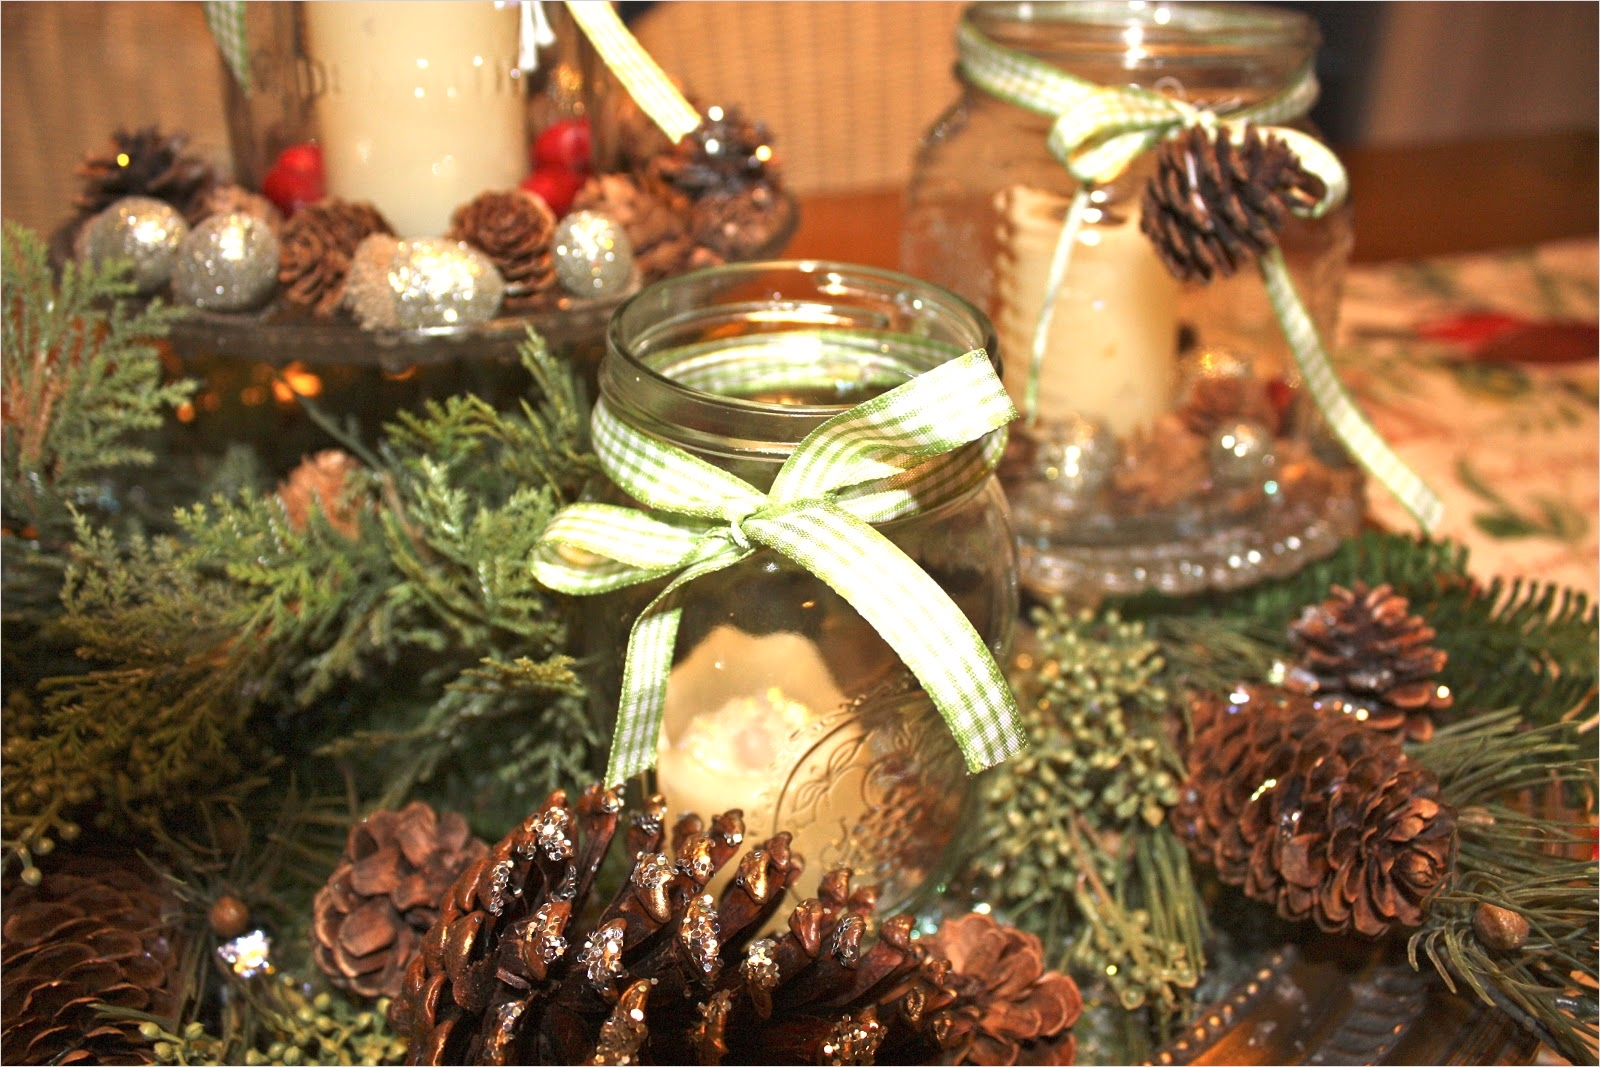 42 Stunning Country Christmas Centerpieces Ideas Ideas 53 Lee S Hideaway A Country Winter Christmas Centerpiece 4